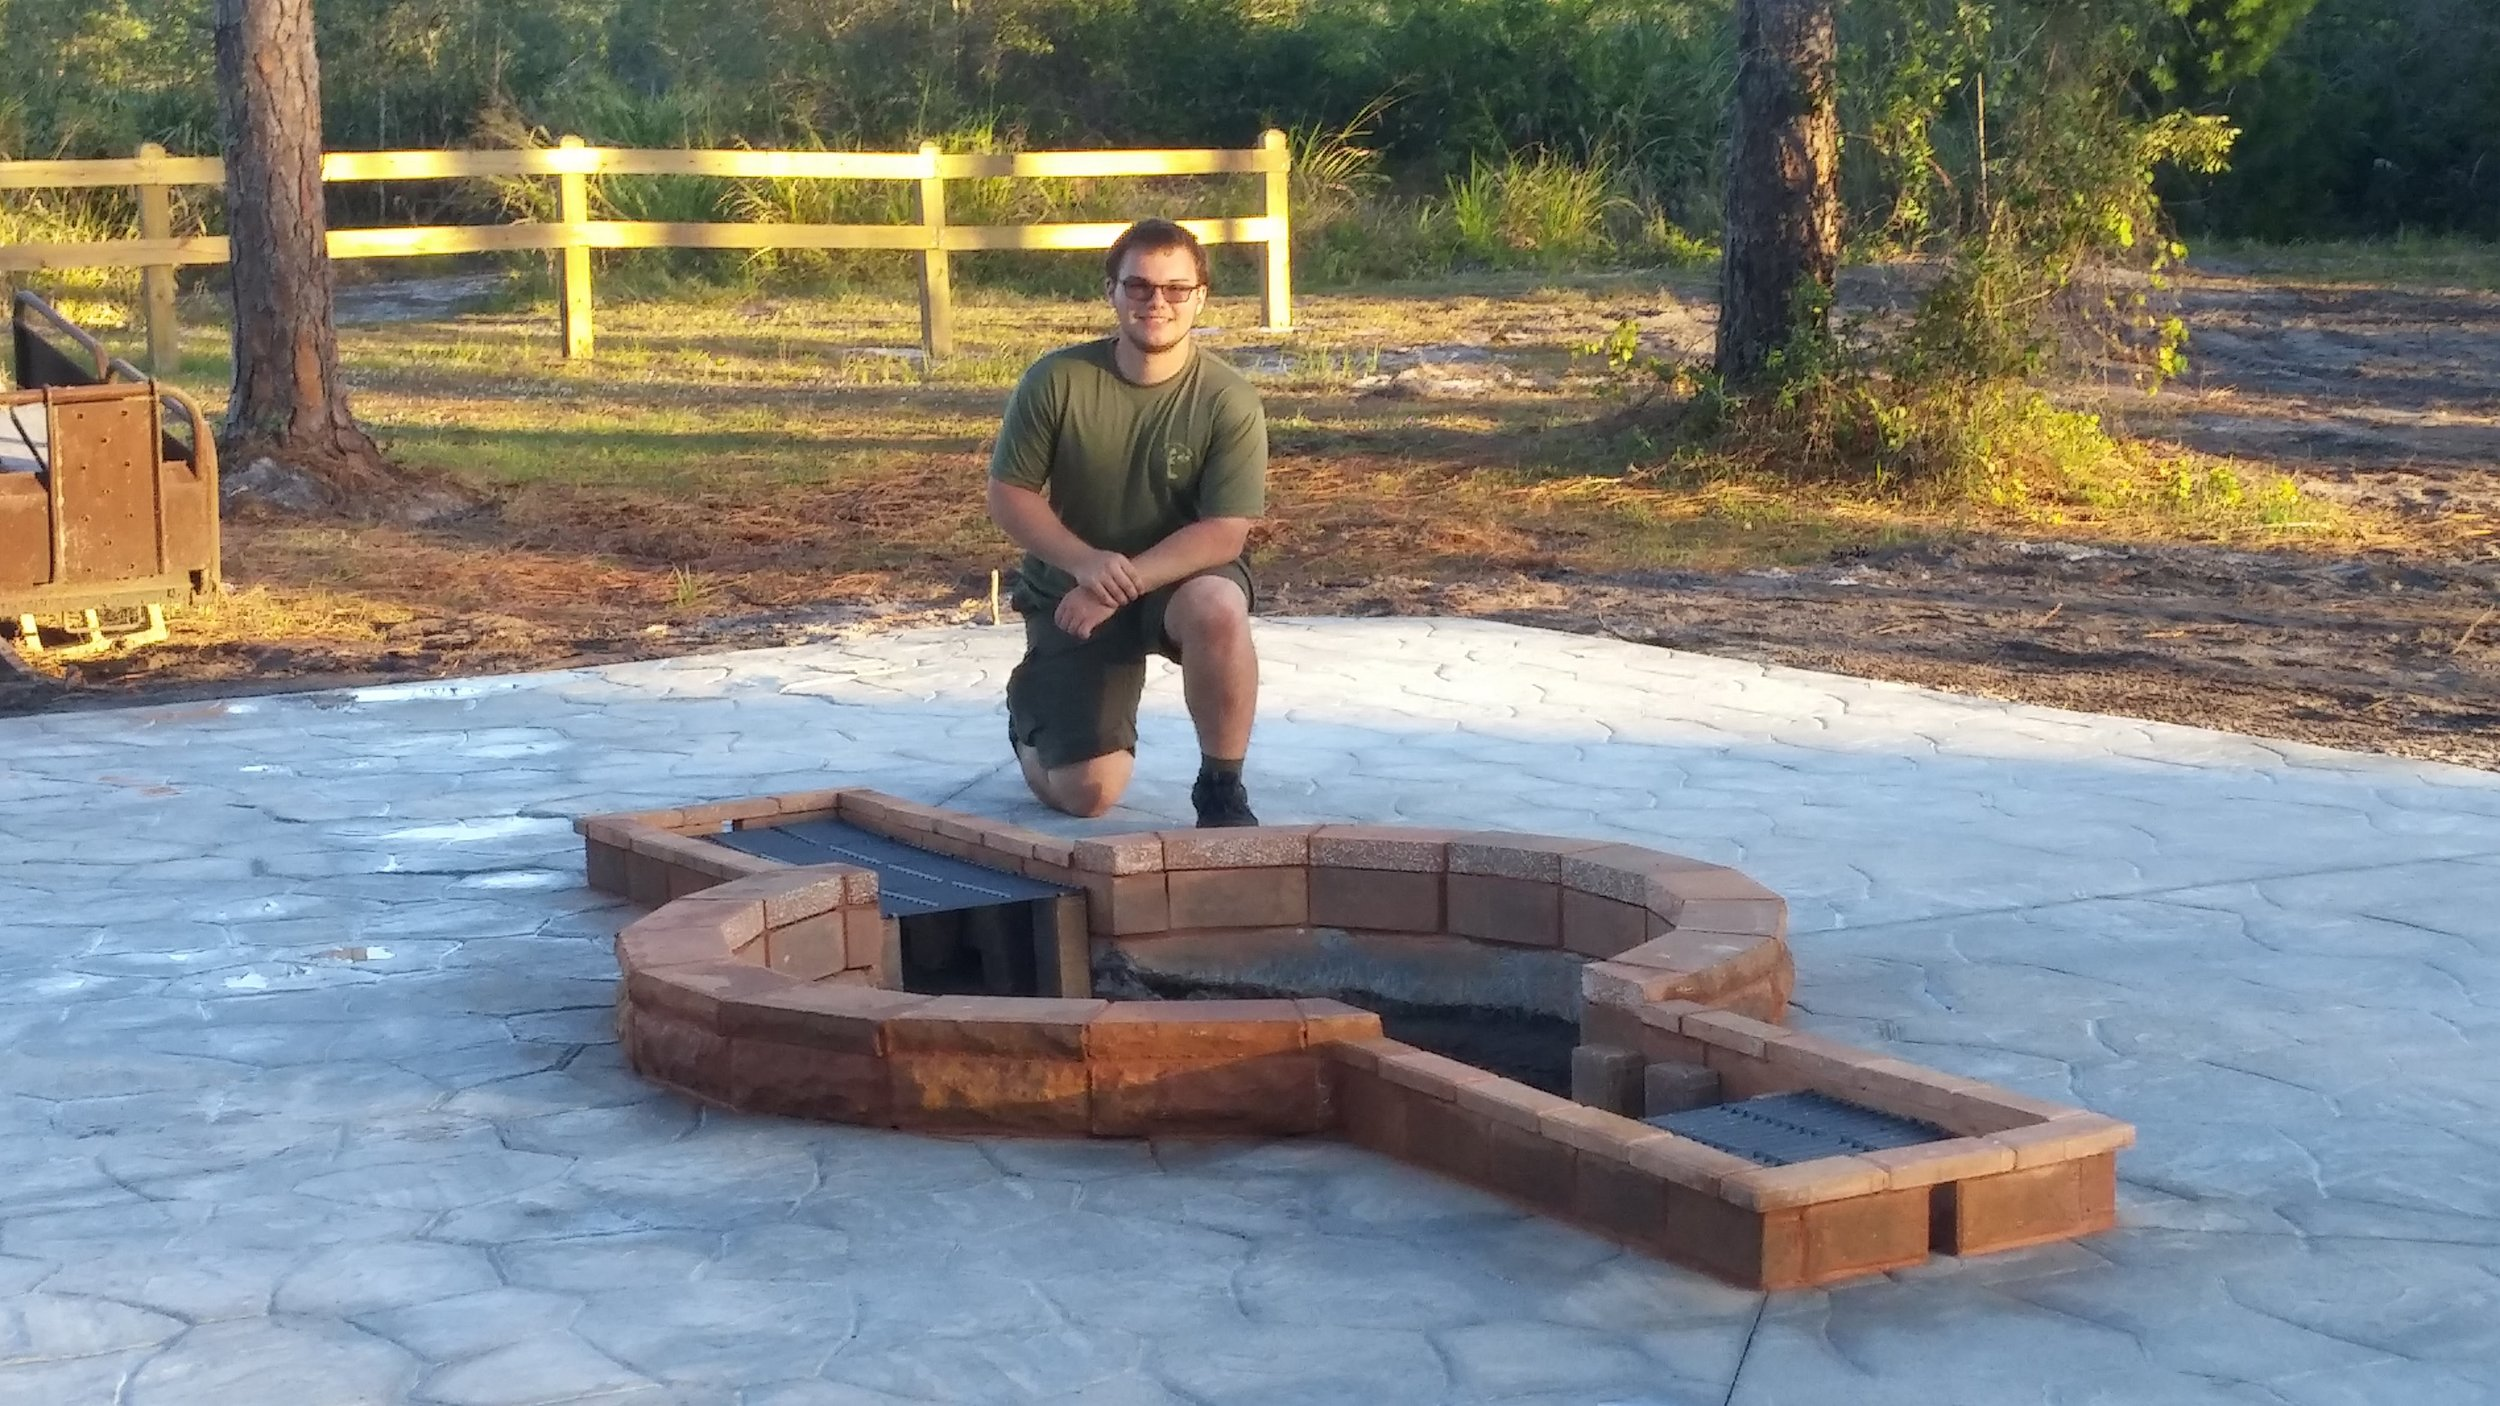 Zachary Barhold built an awesome Fire Pit on the grounds of Pass the Torch.